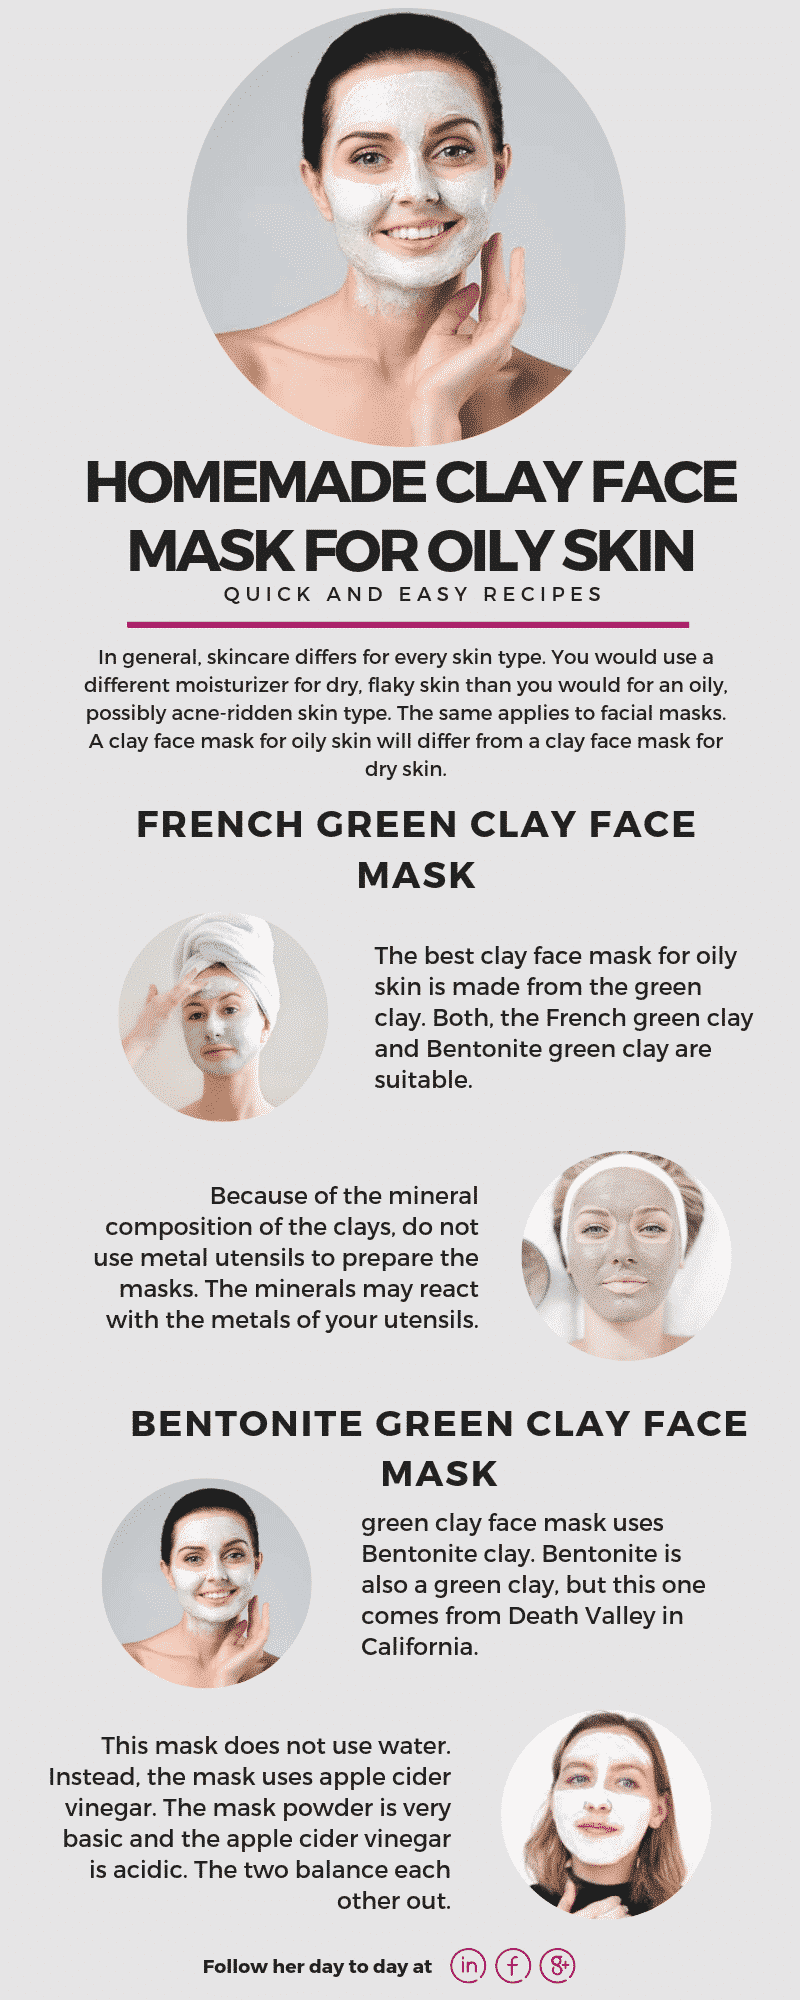 Homemade Clay Face Mask